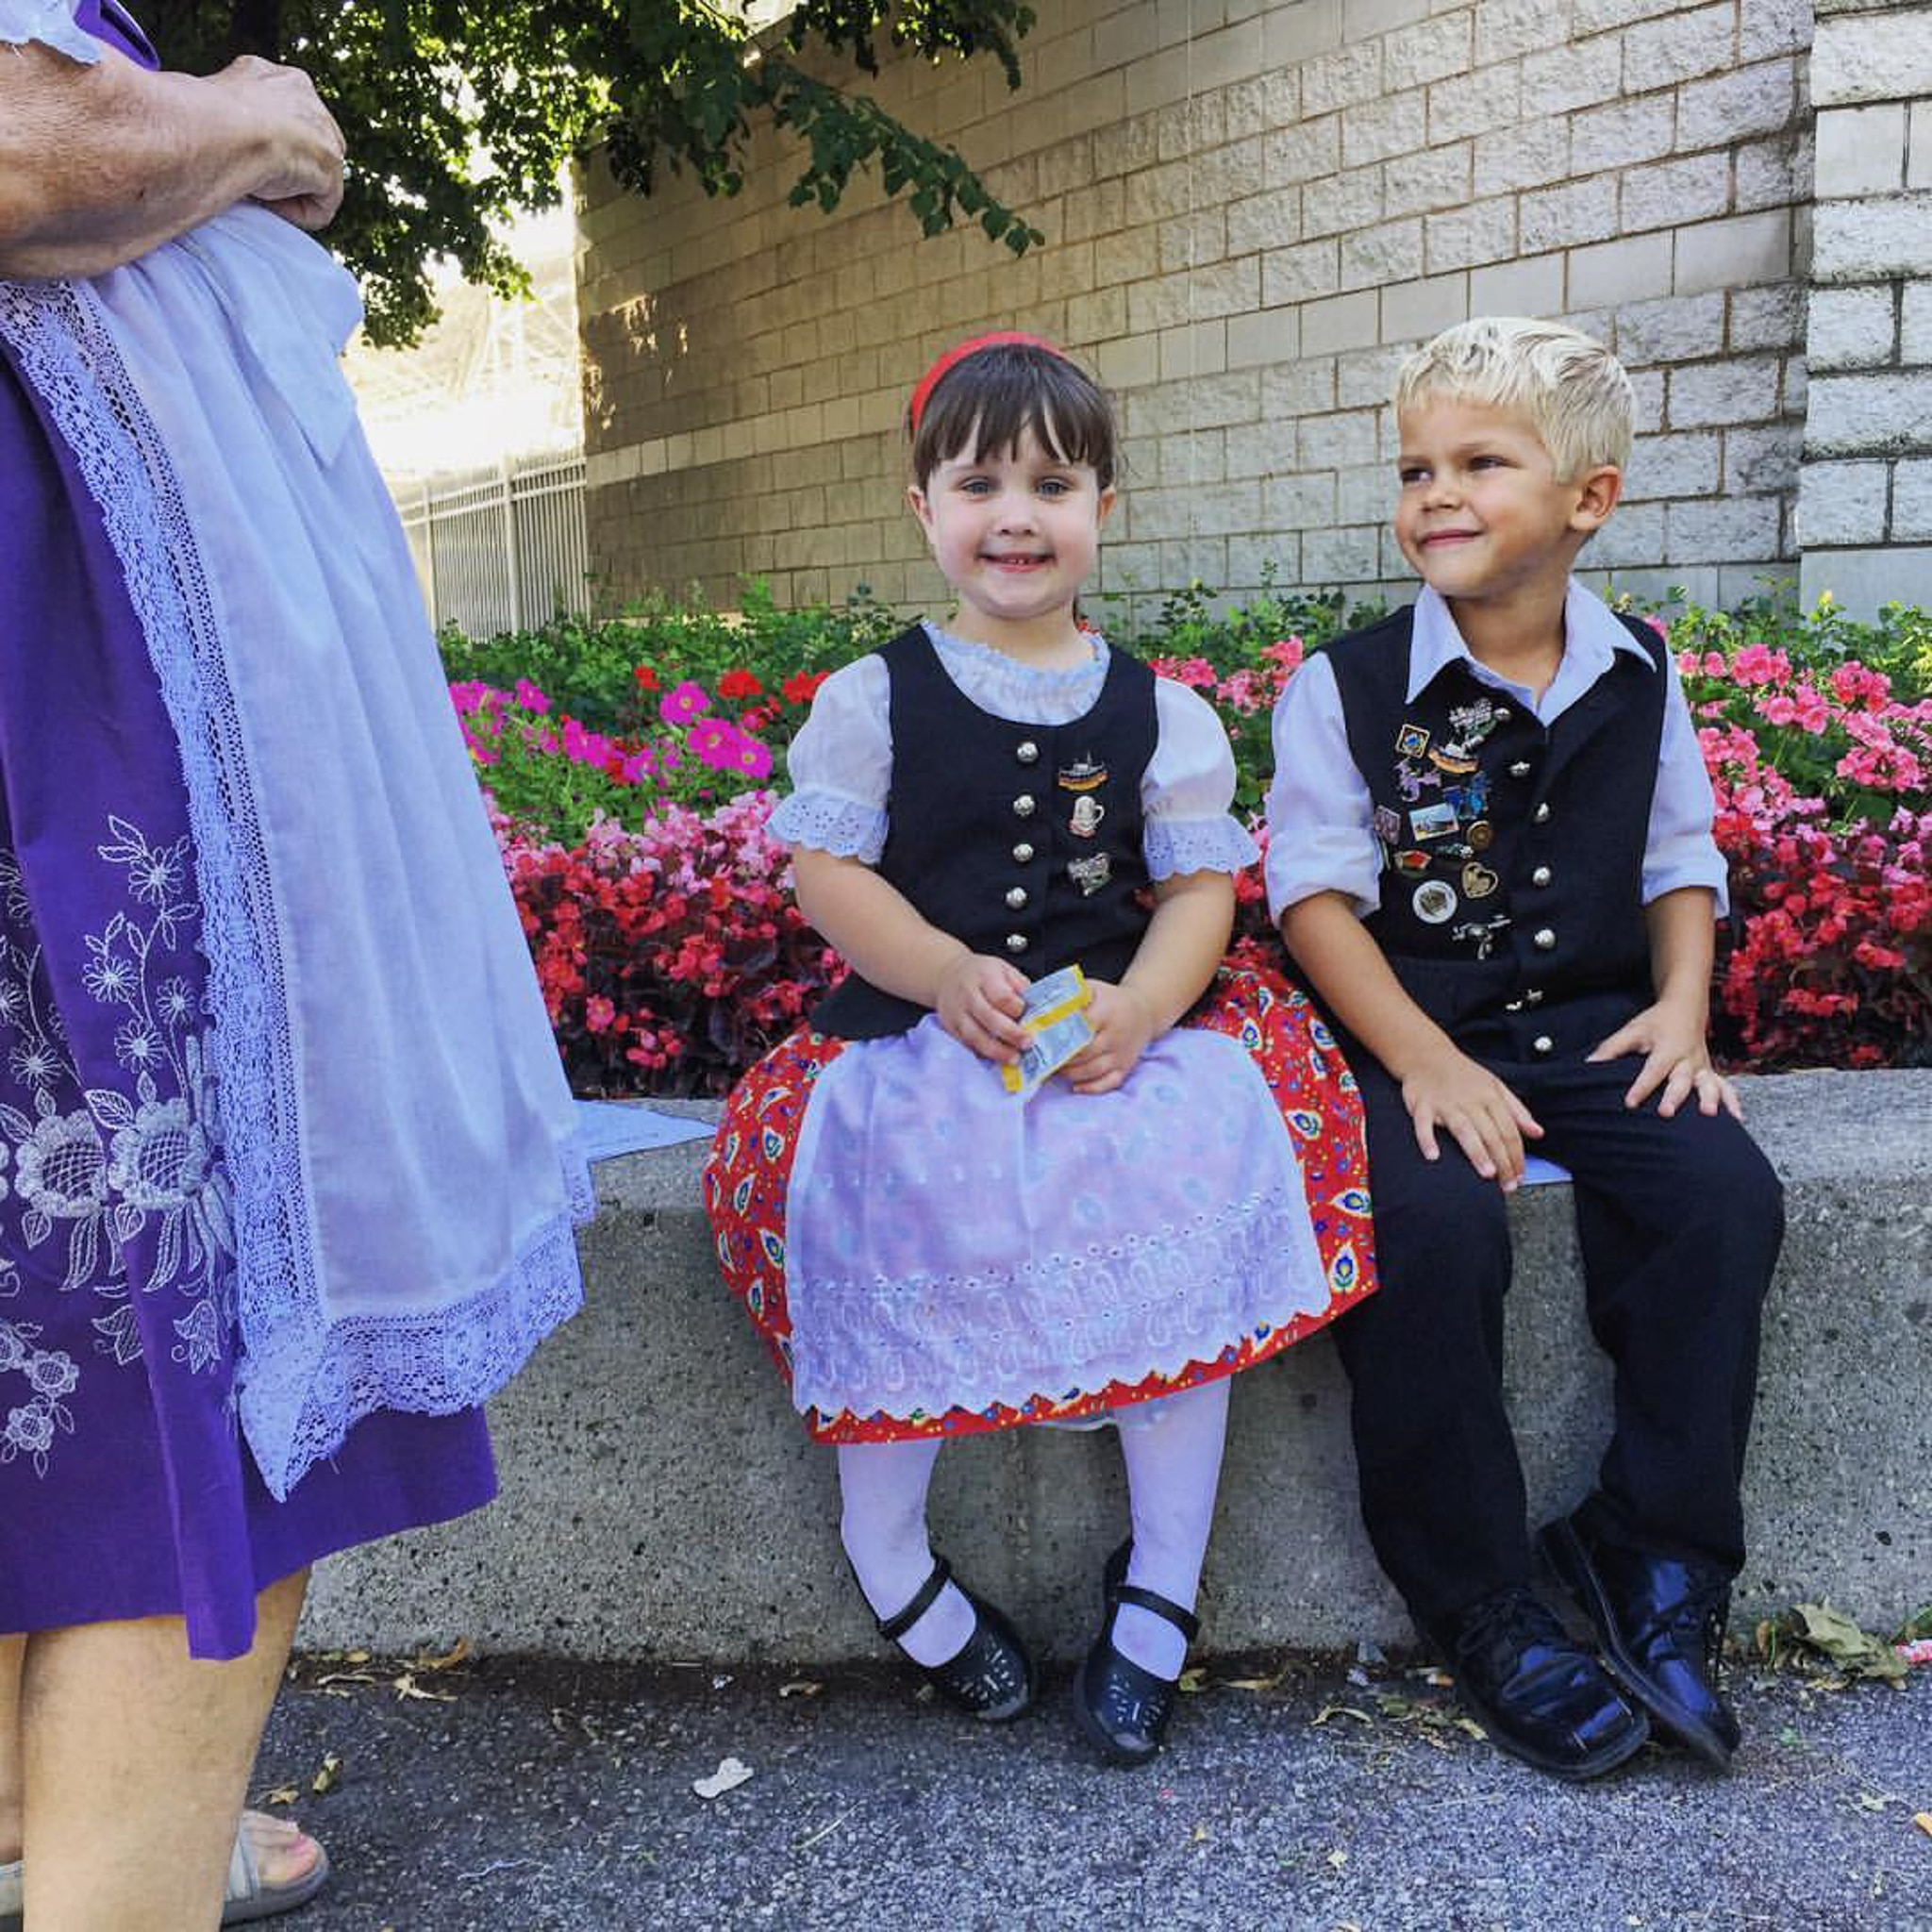 Young girl and young boy dressed in traditional German outfits (© Sherry L. Brukbacher)